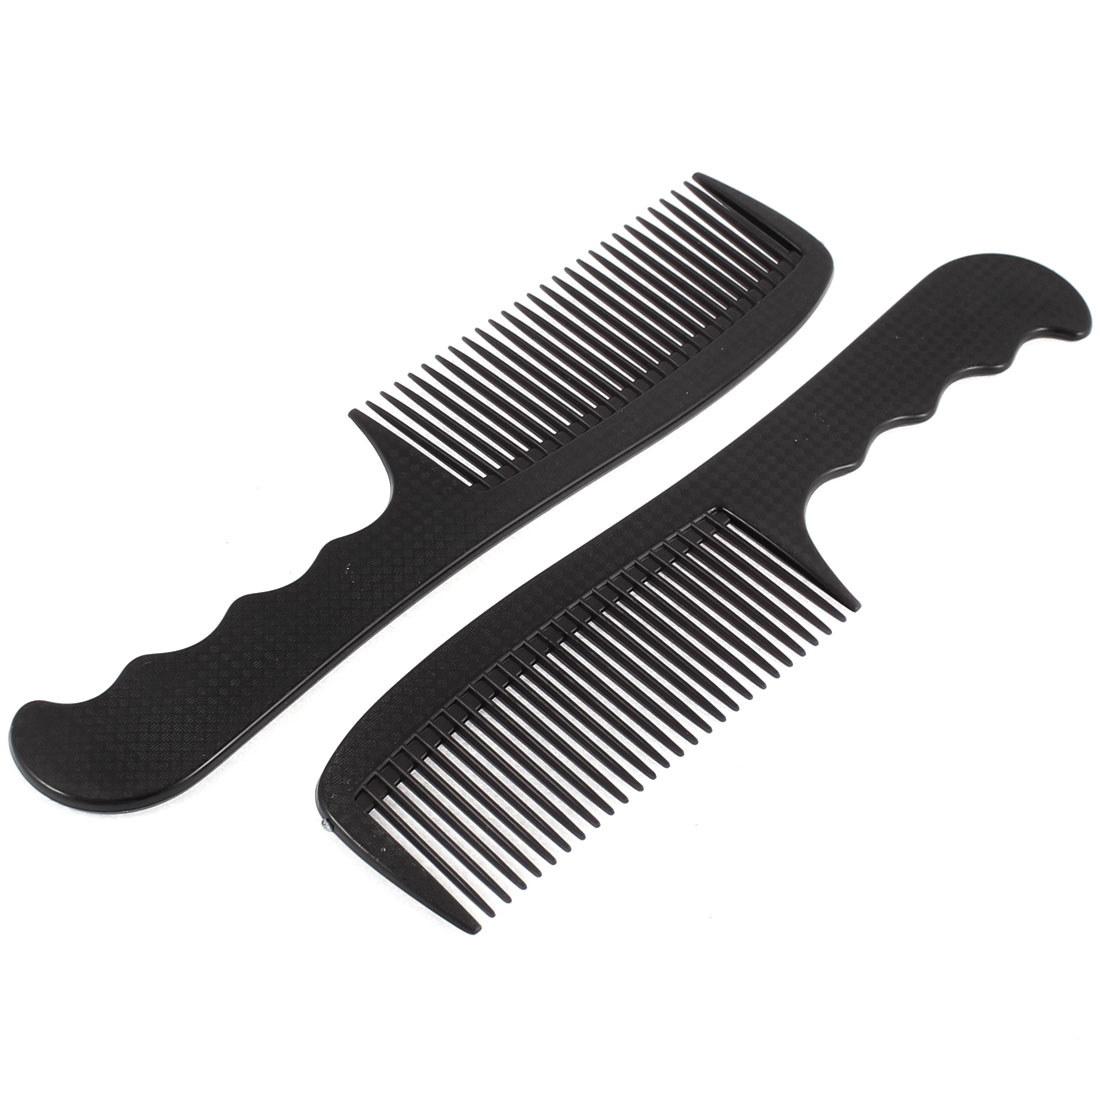 Plastic Massage Scalp Hairdressing Hair Combs Black 2Pcs